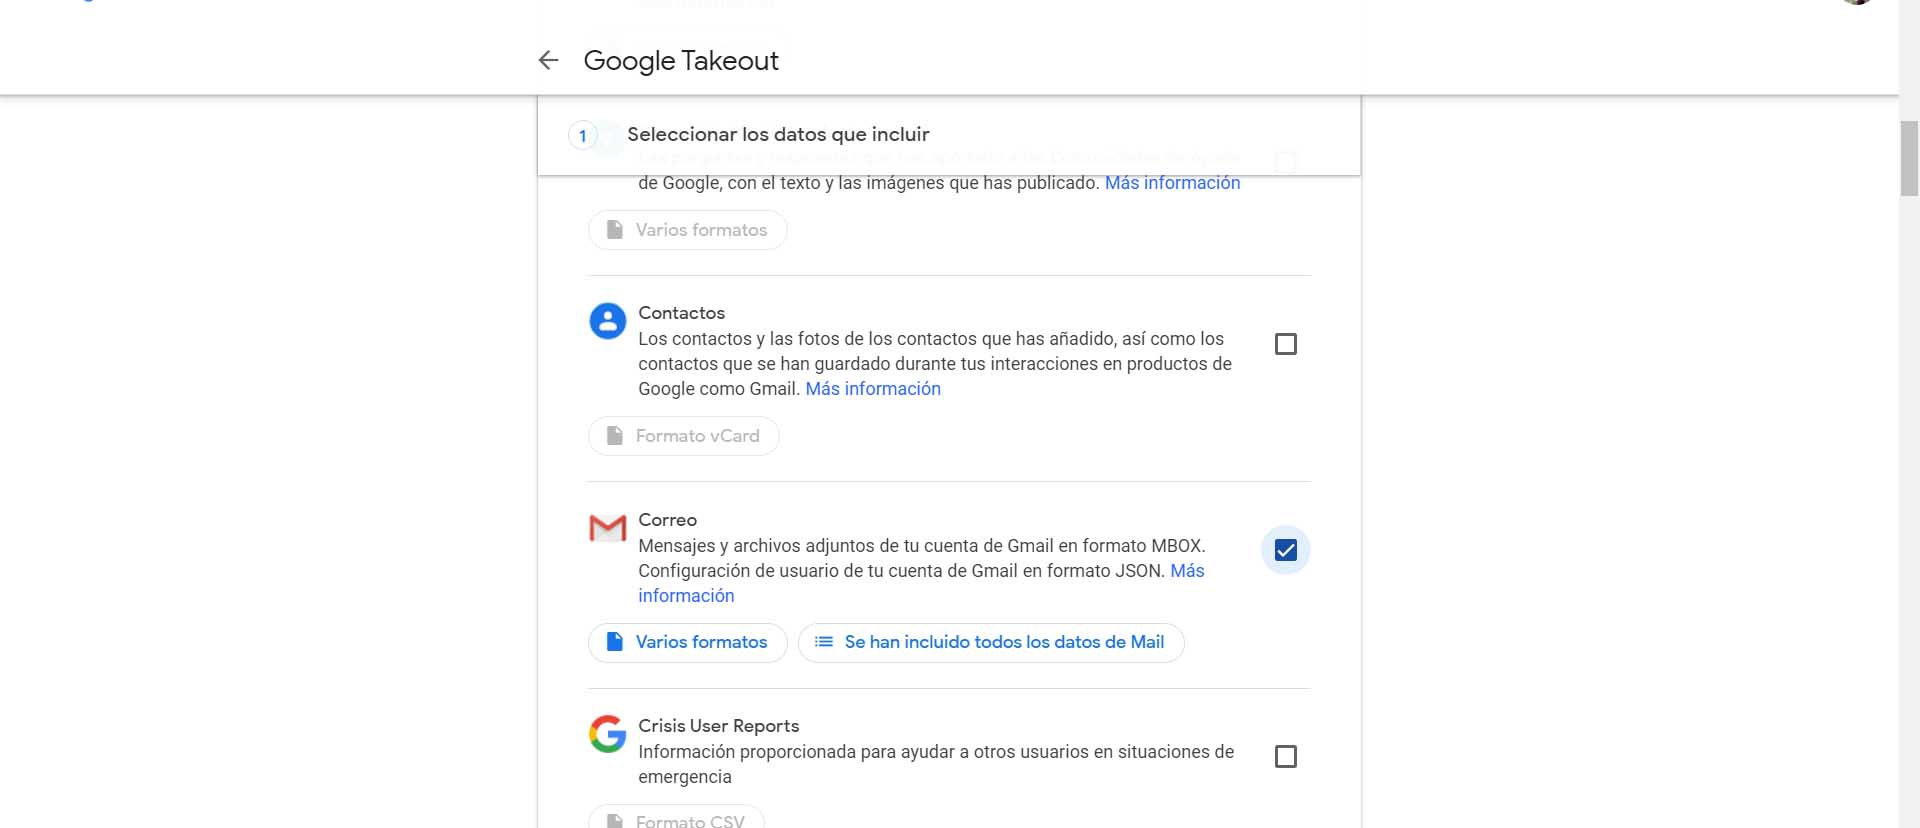 Download emails from Gmail